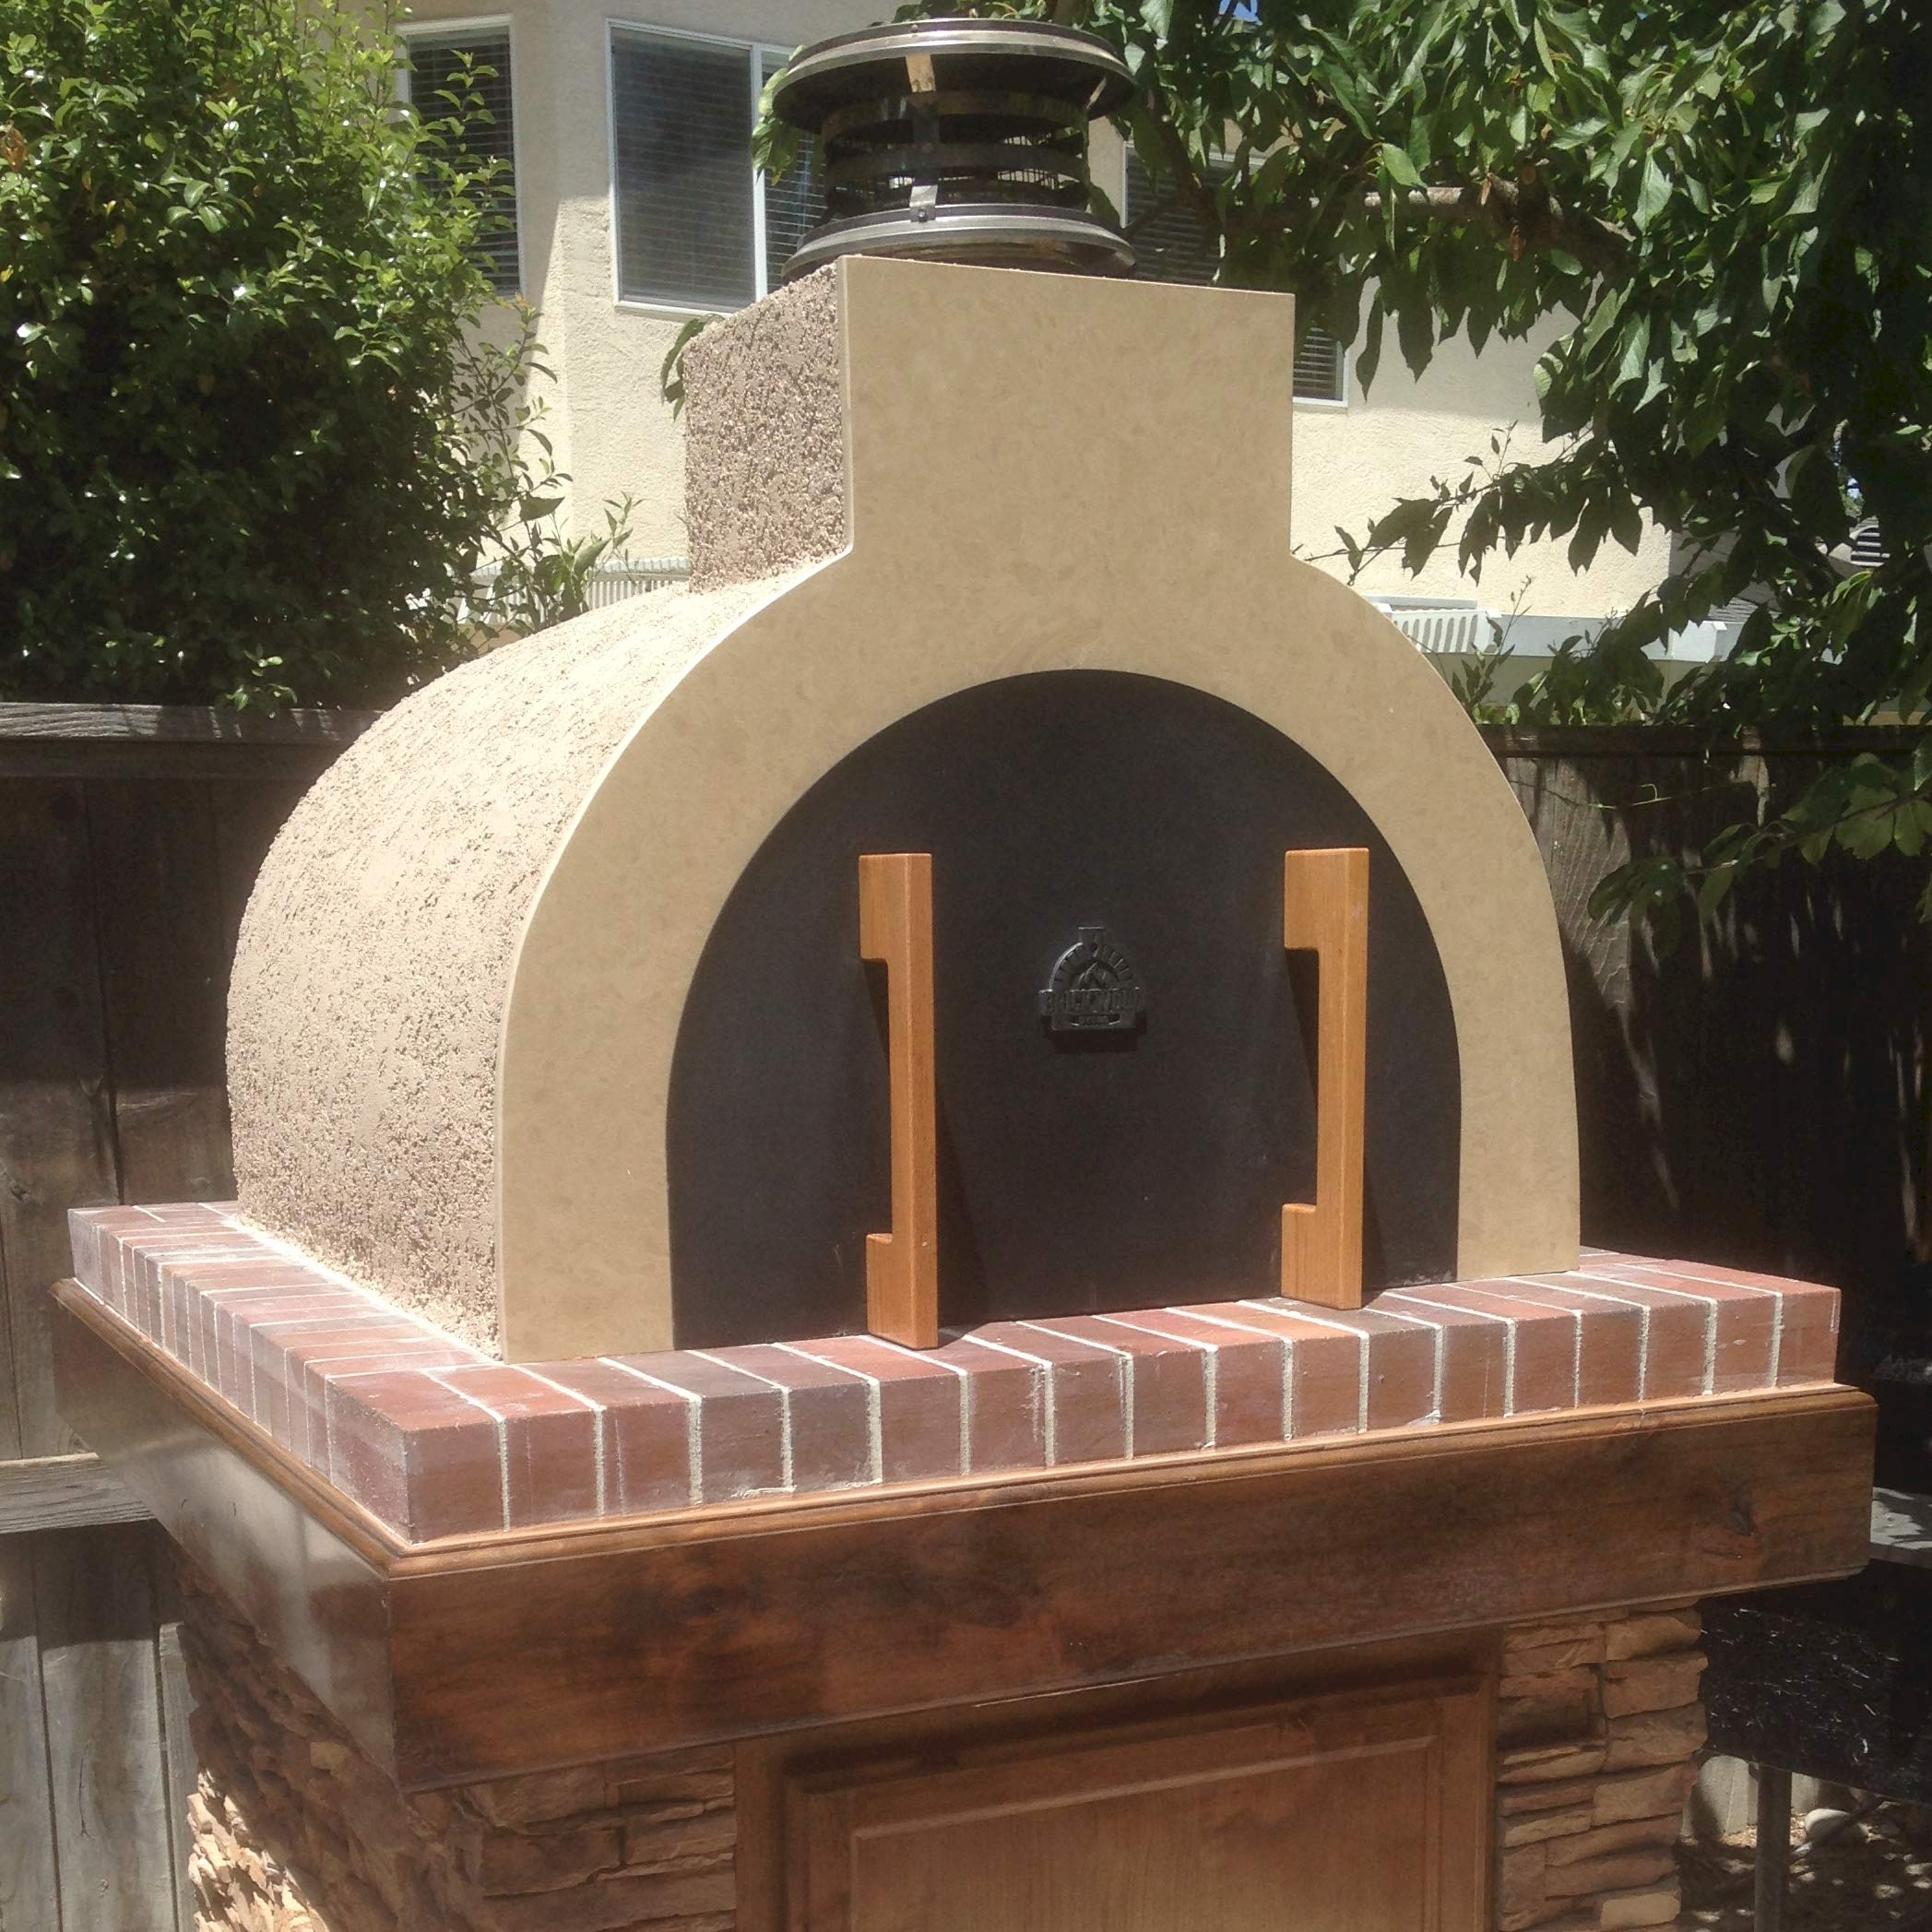 Outdoor Pizza Oven Kit • DIY Pizza Oven - The Mattone Barile Foam Form (Medium Size) provides the PERFECT shape / size for building a money-saving homemade Pizza Oven with locally sourced Firebrick. by BrickWood Ovens